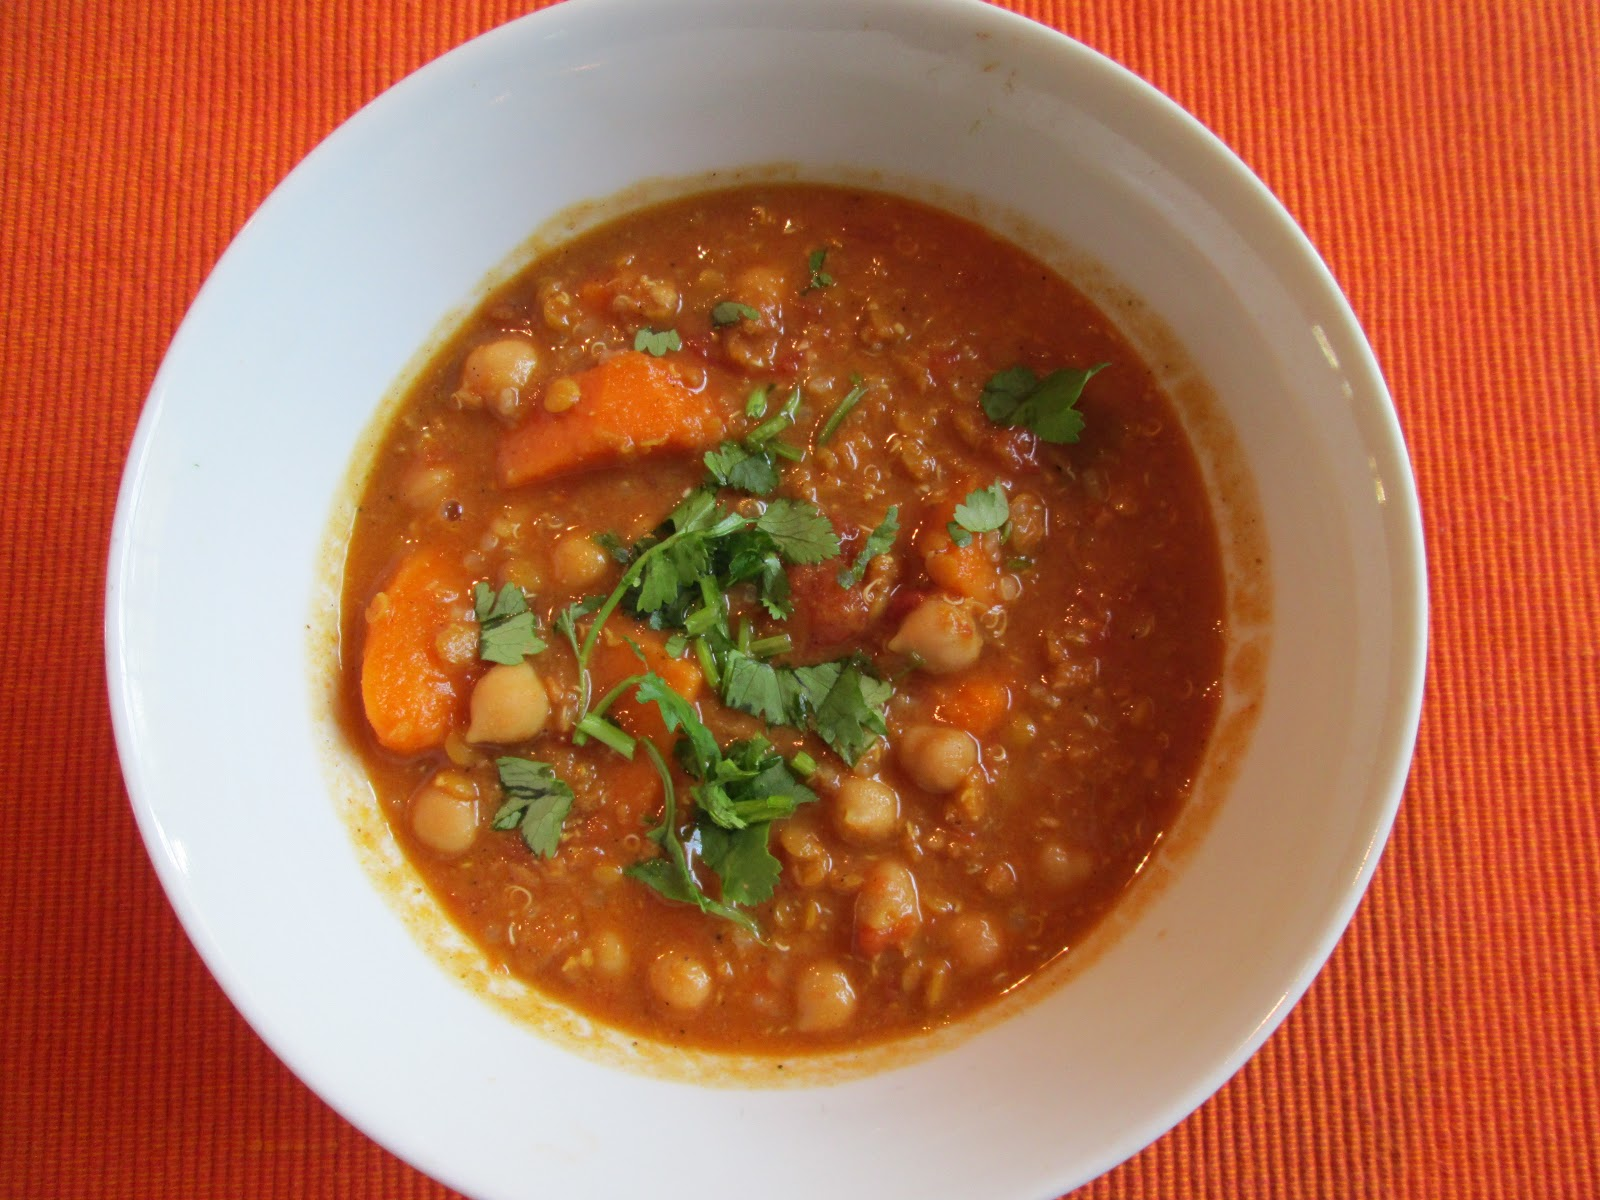 Spicy African Peanut Stew with Quinoa